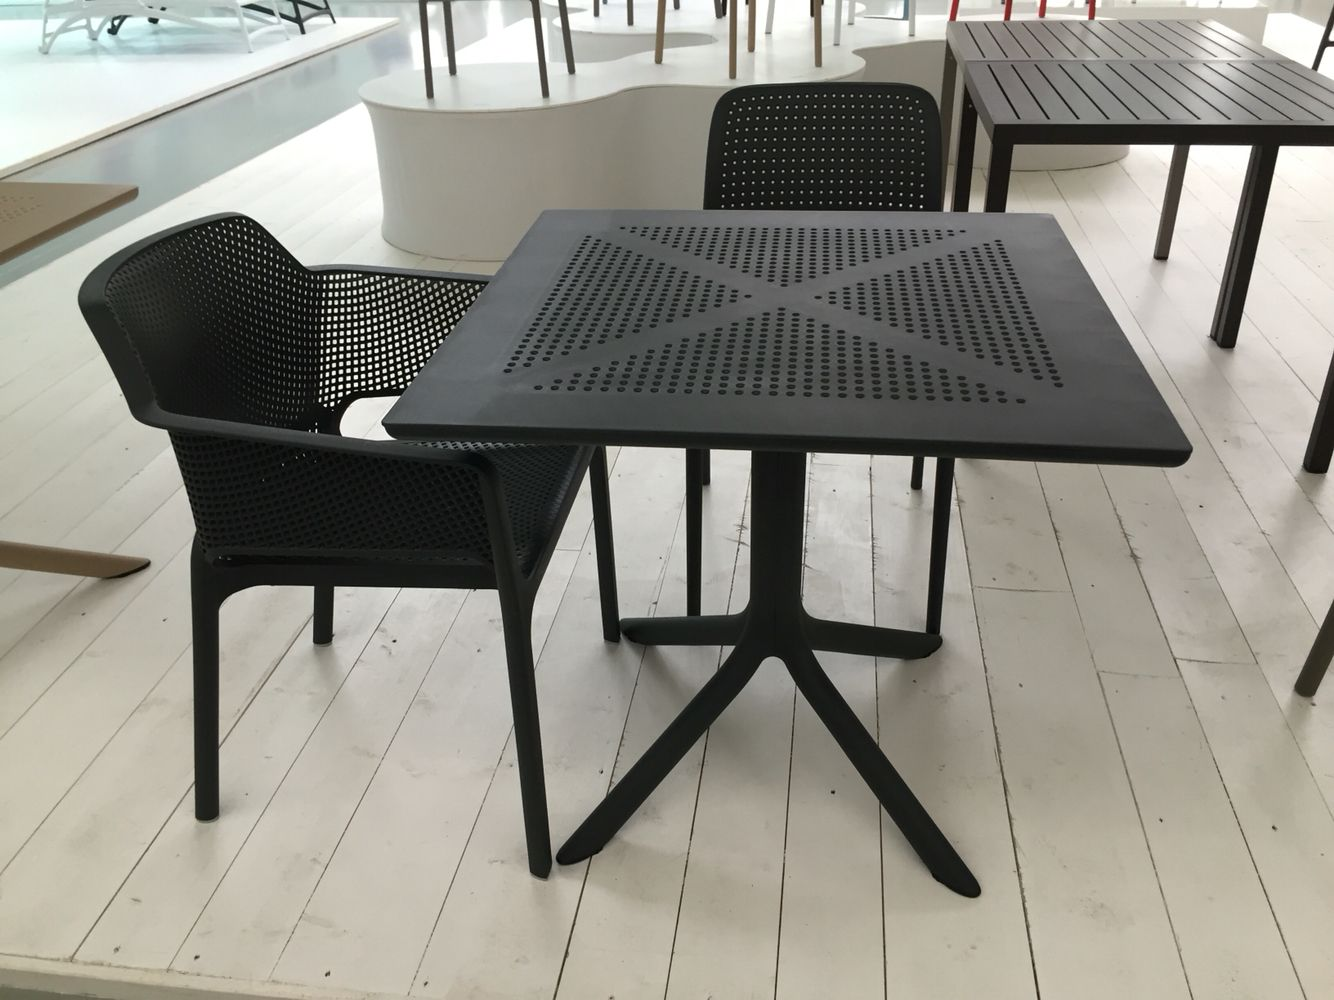 New Nardi clip table with net chairsBalcony Furniture